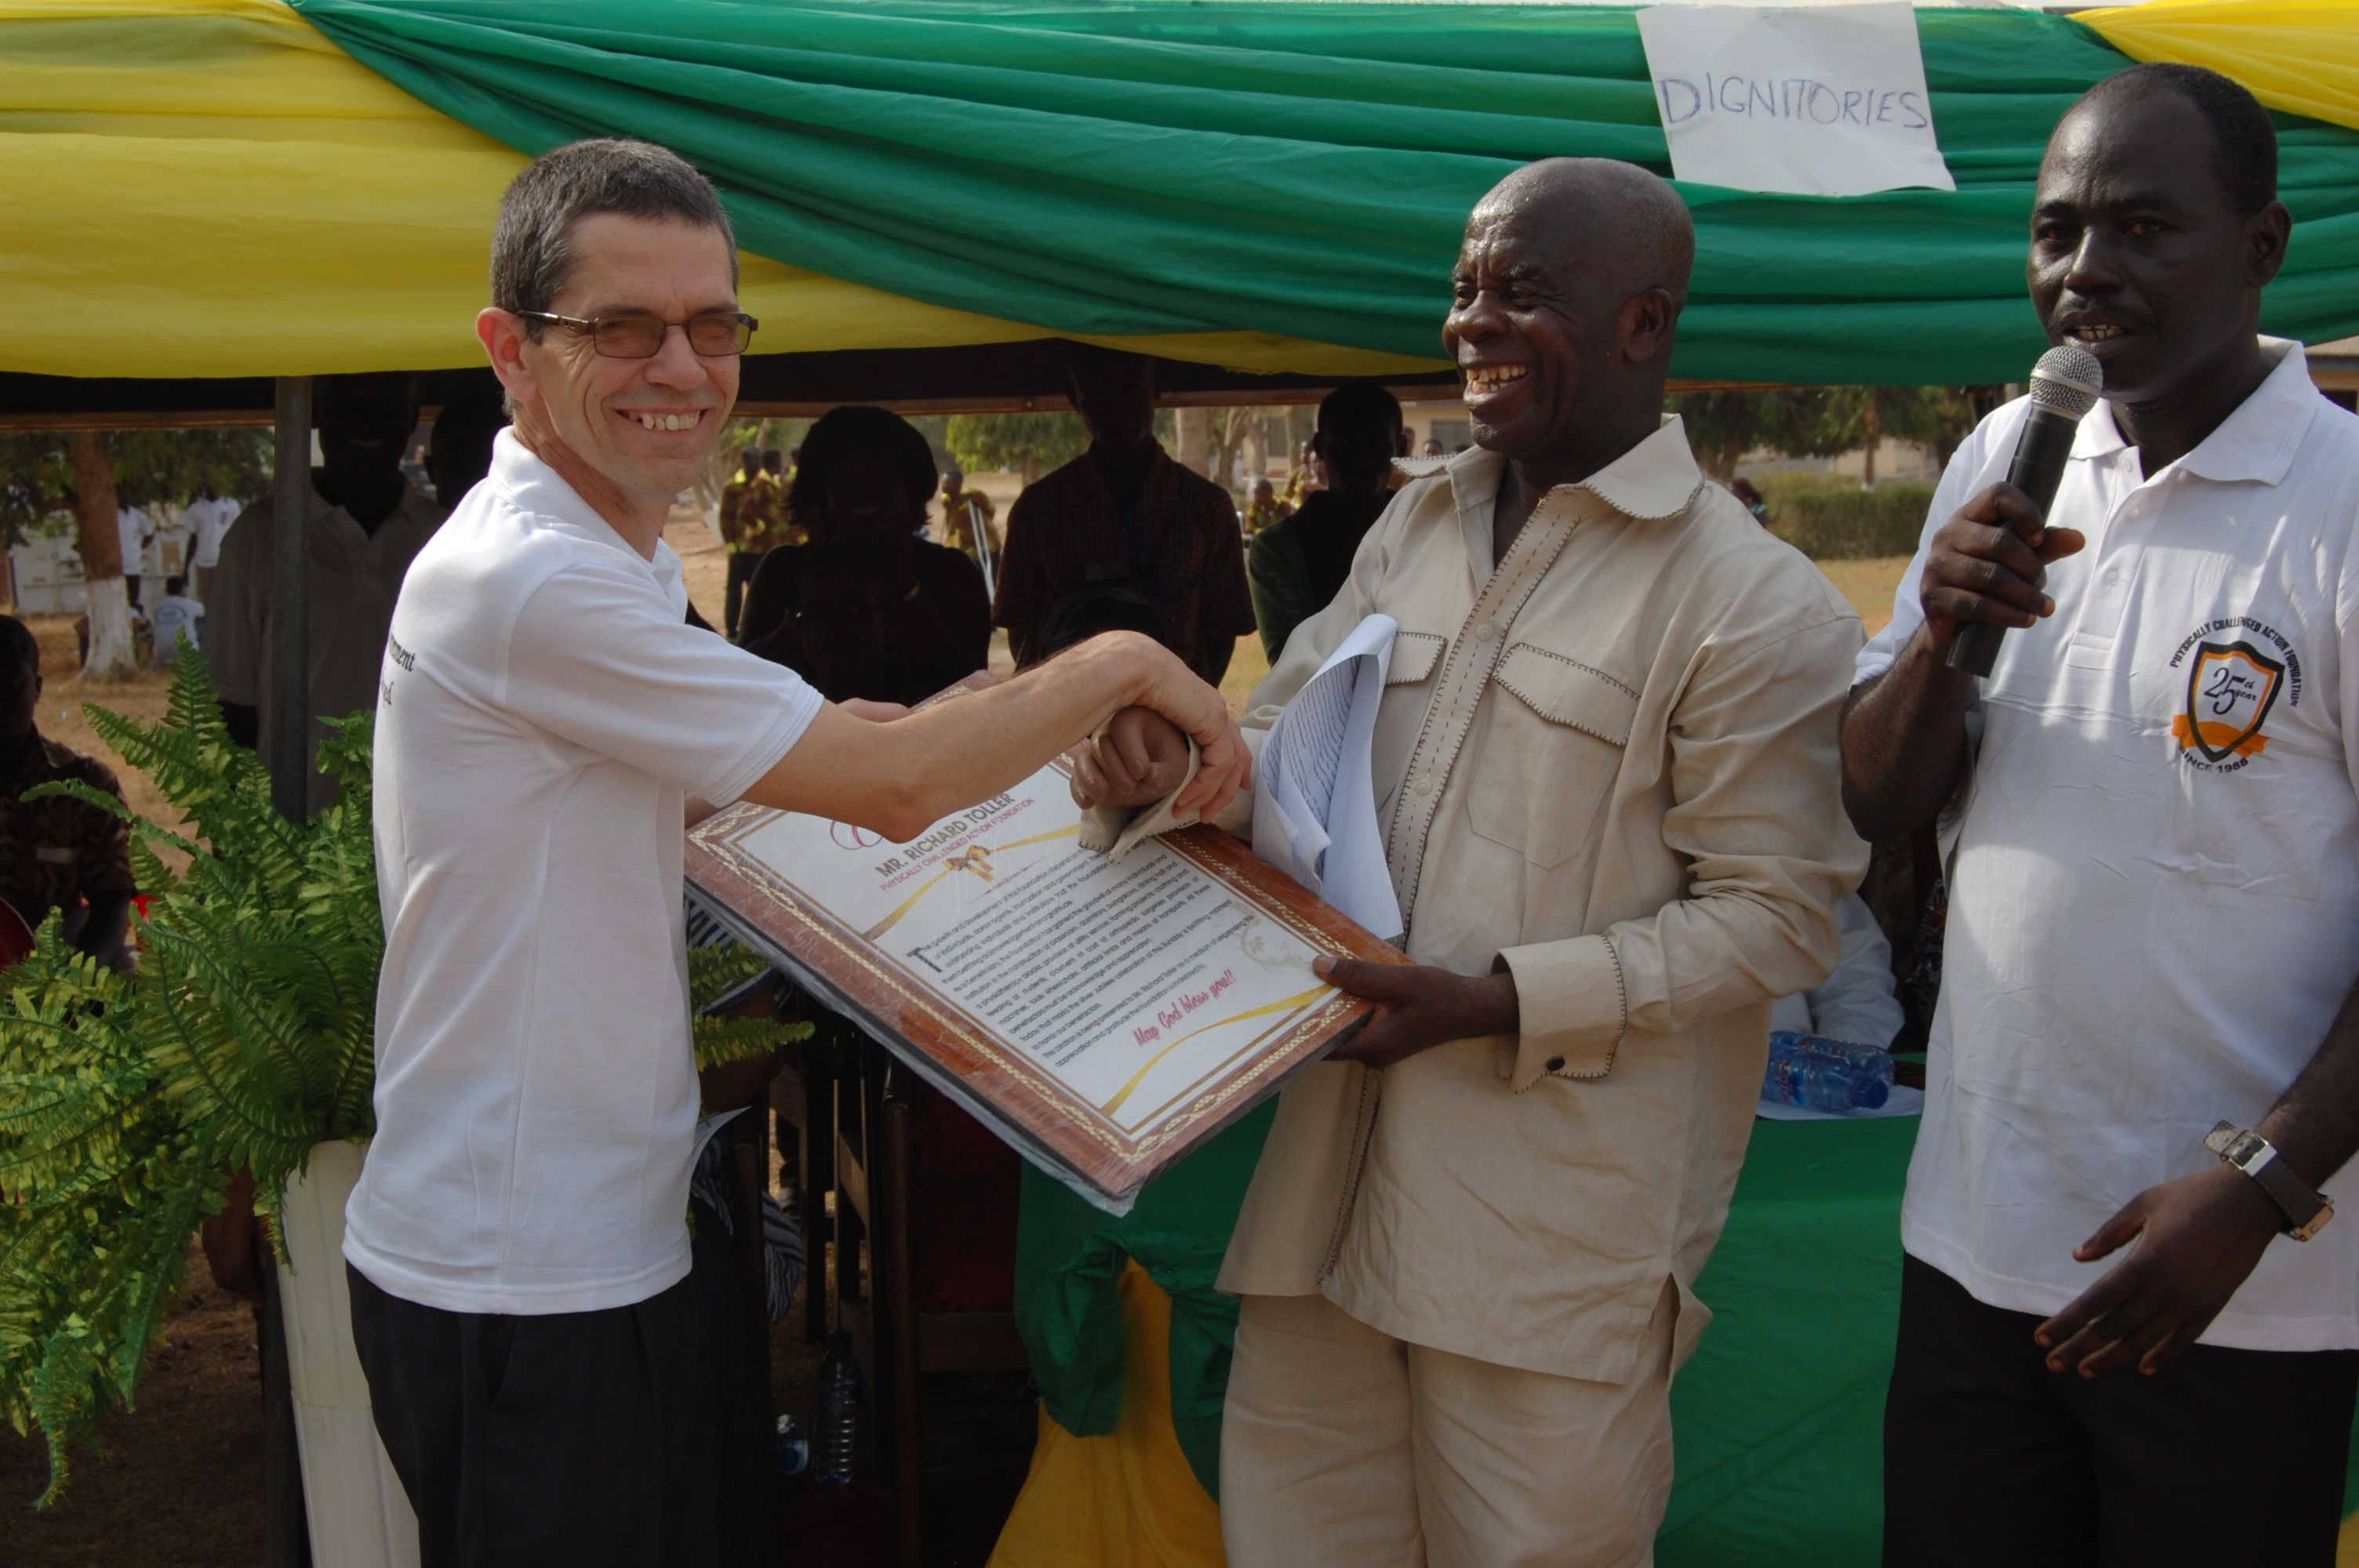 Richard receives a certificate of thanks from centre director Mr Antwi